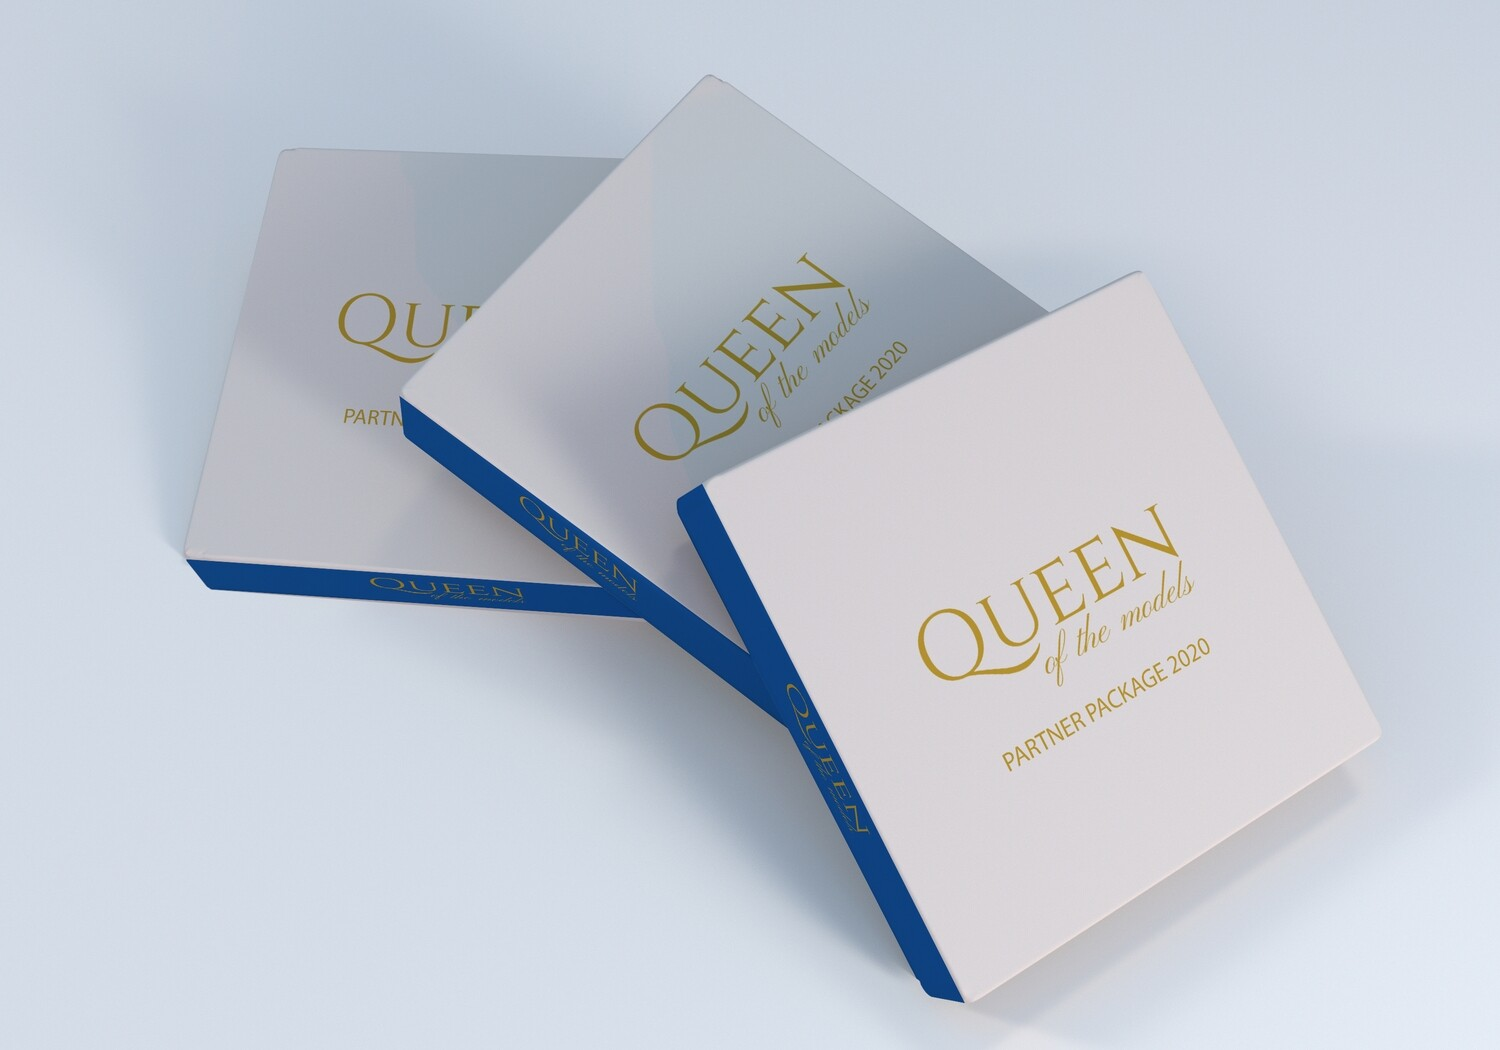 Queen of the models package 50